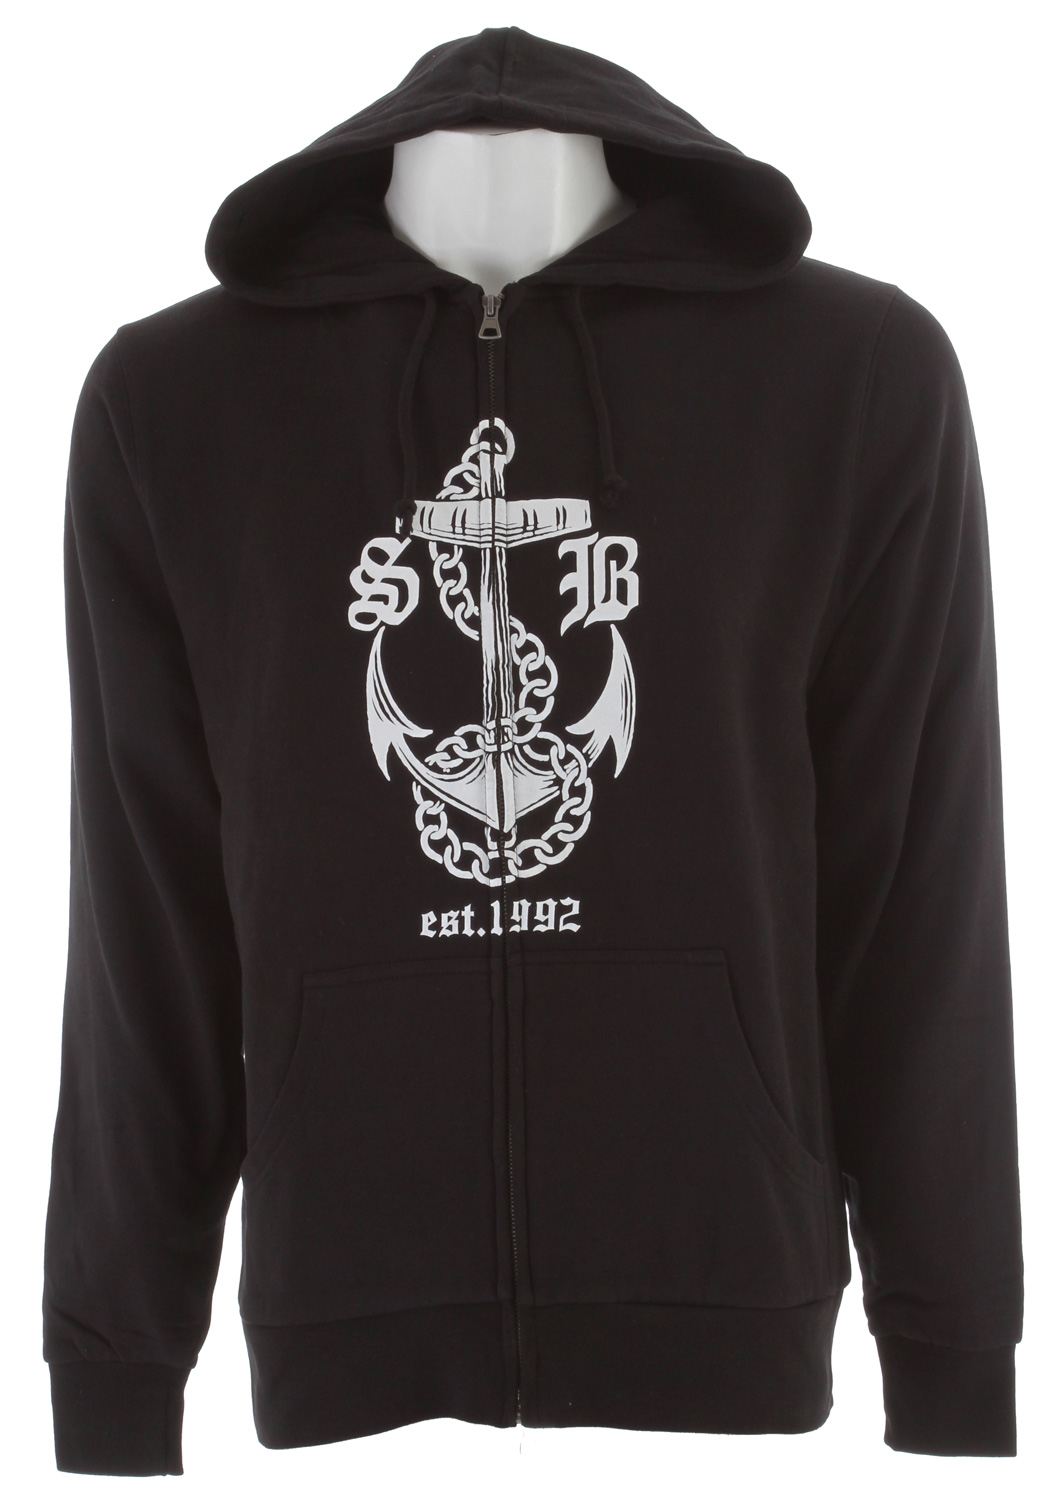 This thing clubs baby seals on the regular! (in a good way)Key Features of the Special Blend Thugby Zip Hoodie: 80% Cotton 20% Polyester 100% Awesome - $29.95